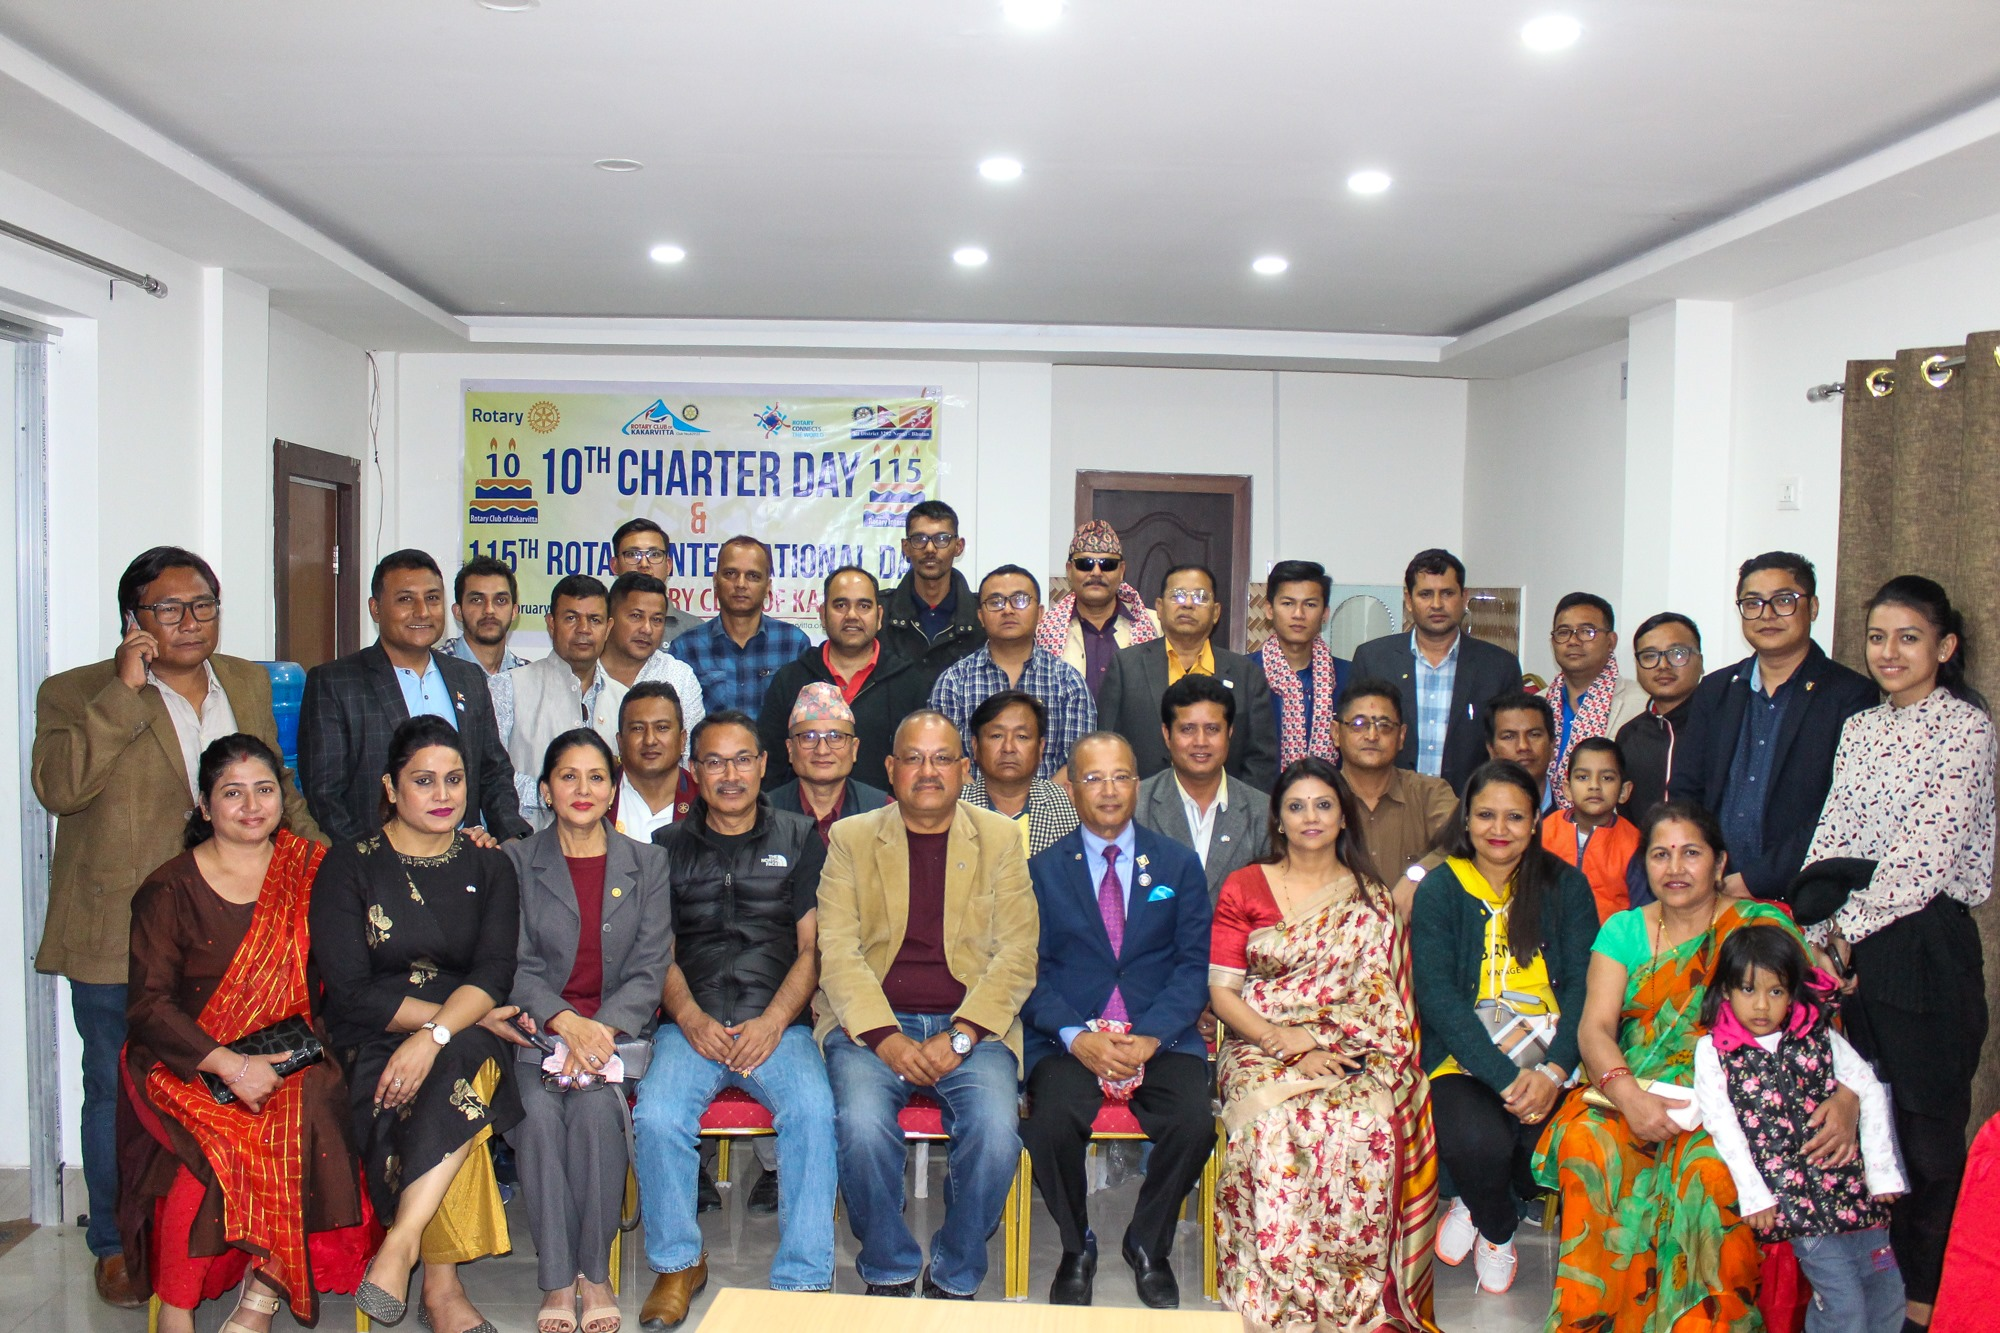 10th Charter Day & 115th Rotary International Day Celebration